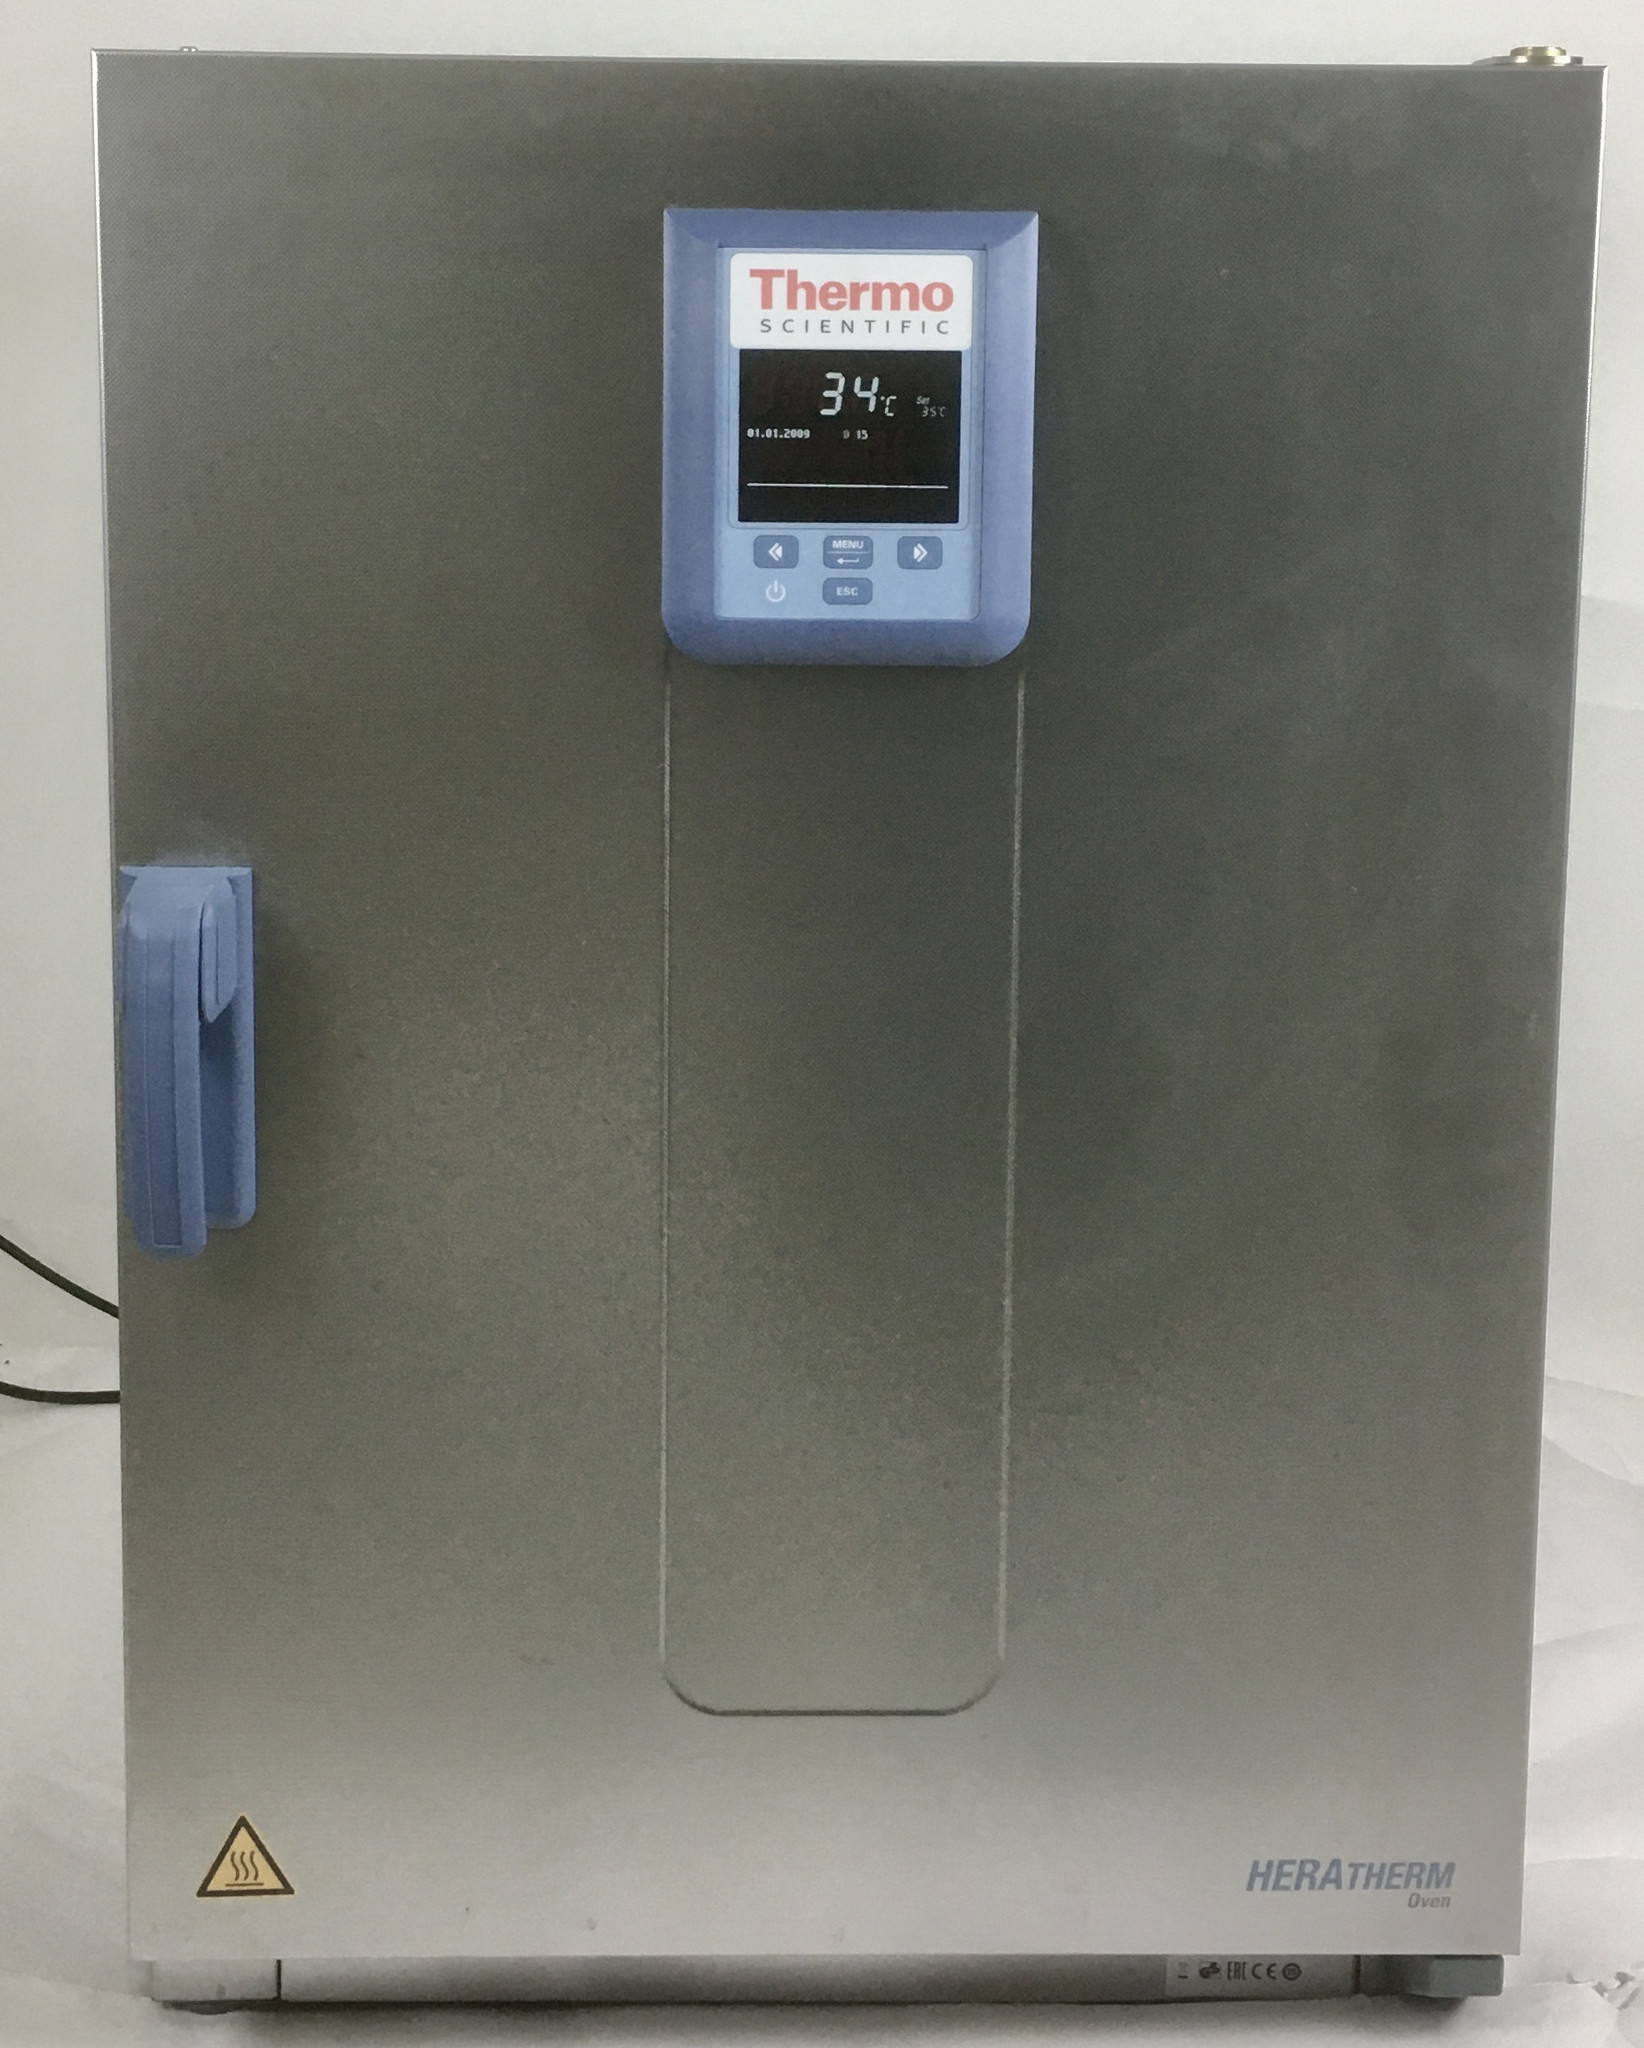 Thermo Scientific Heratherm OGH180 SS Drying Oven